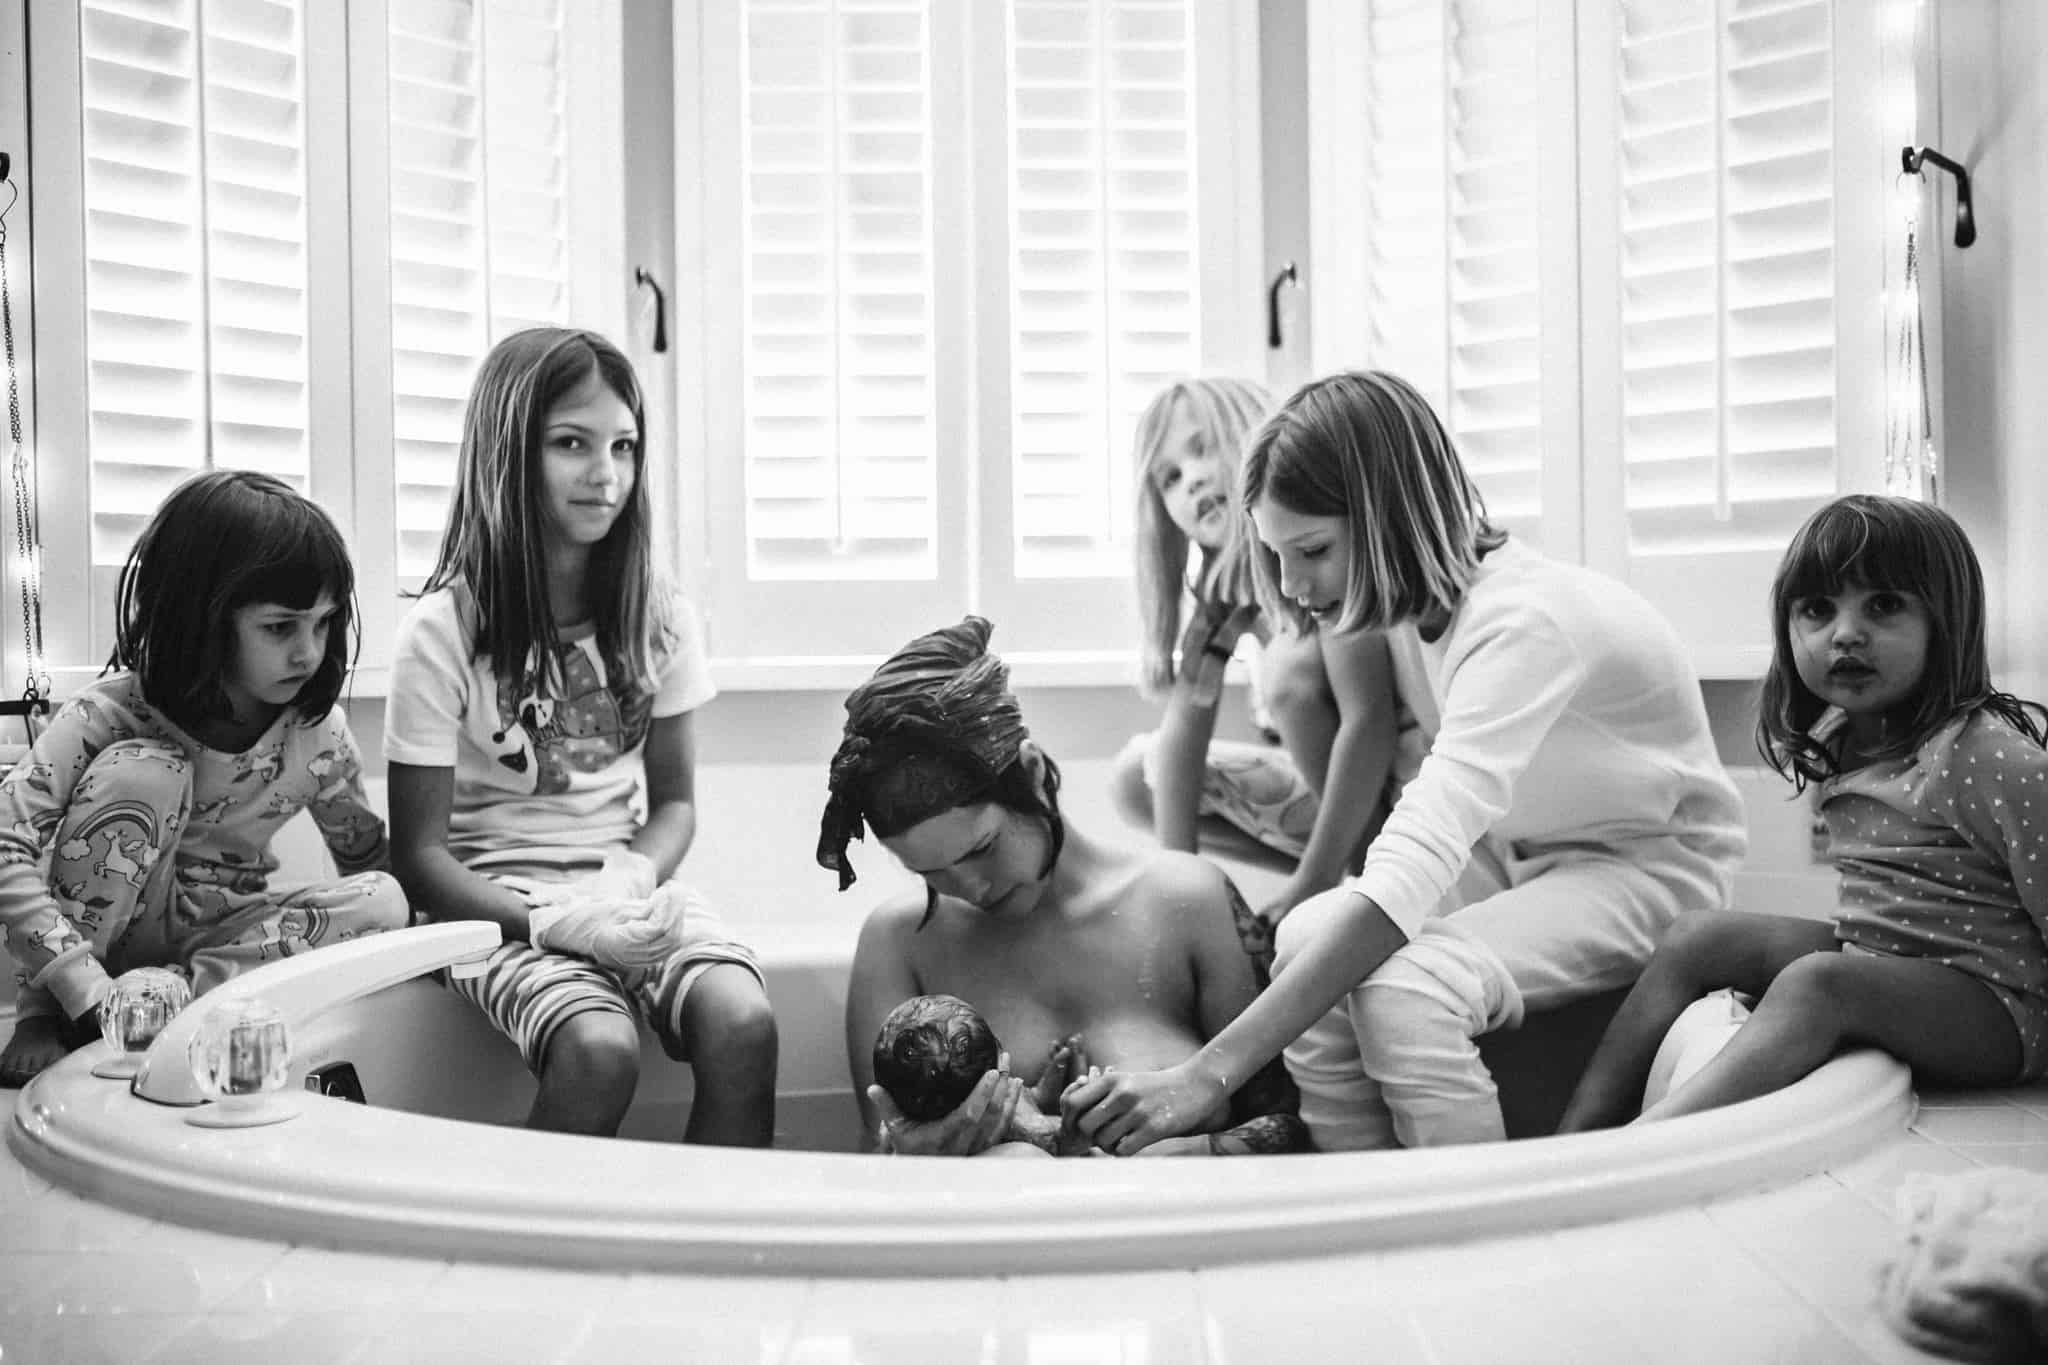 5 sisters are watching their mother give birth in a home water birth